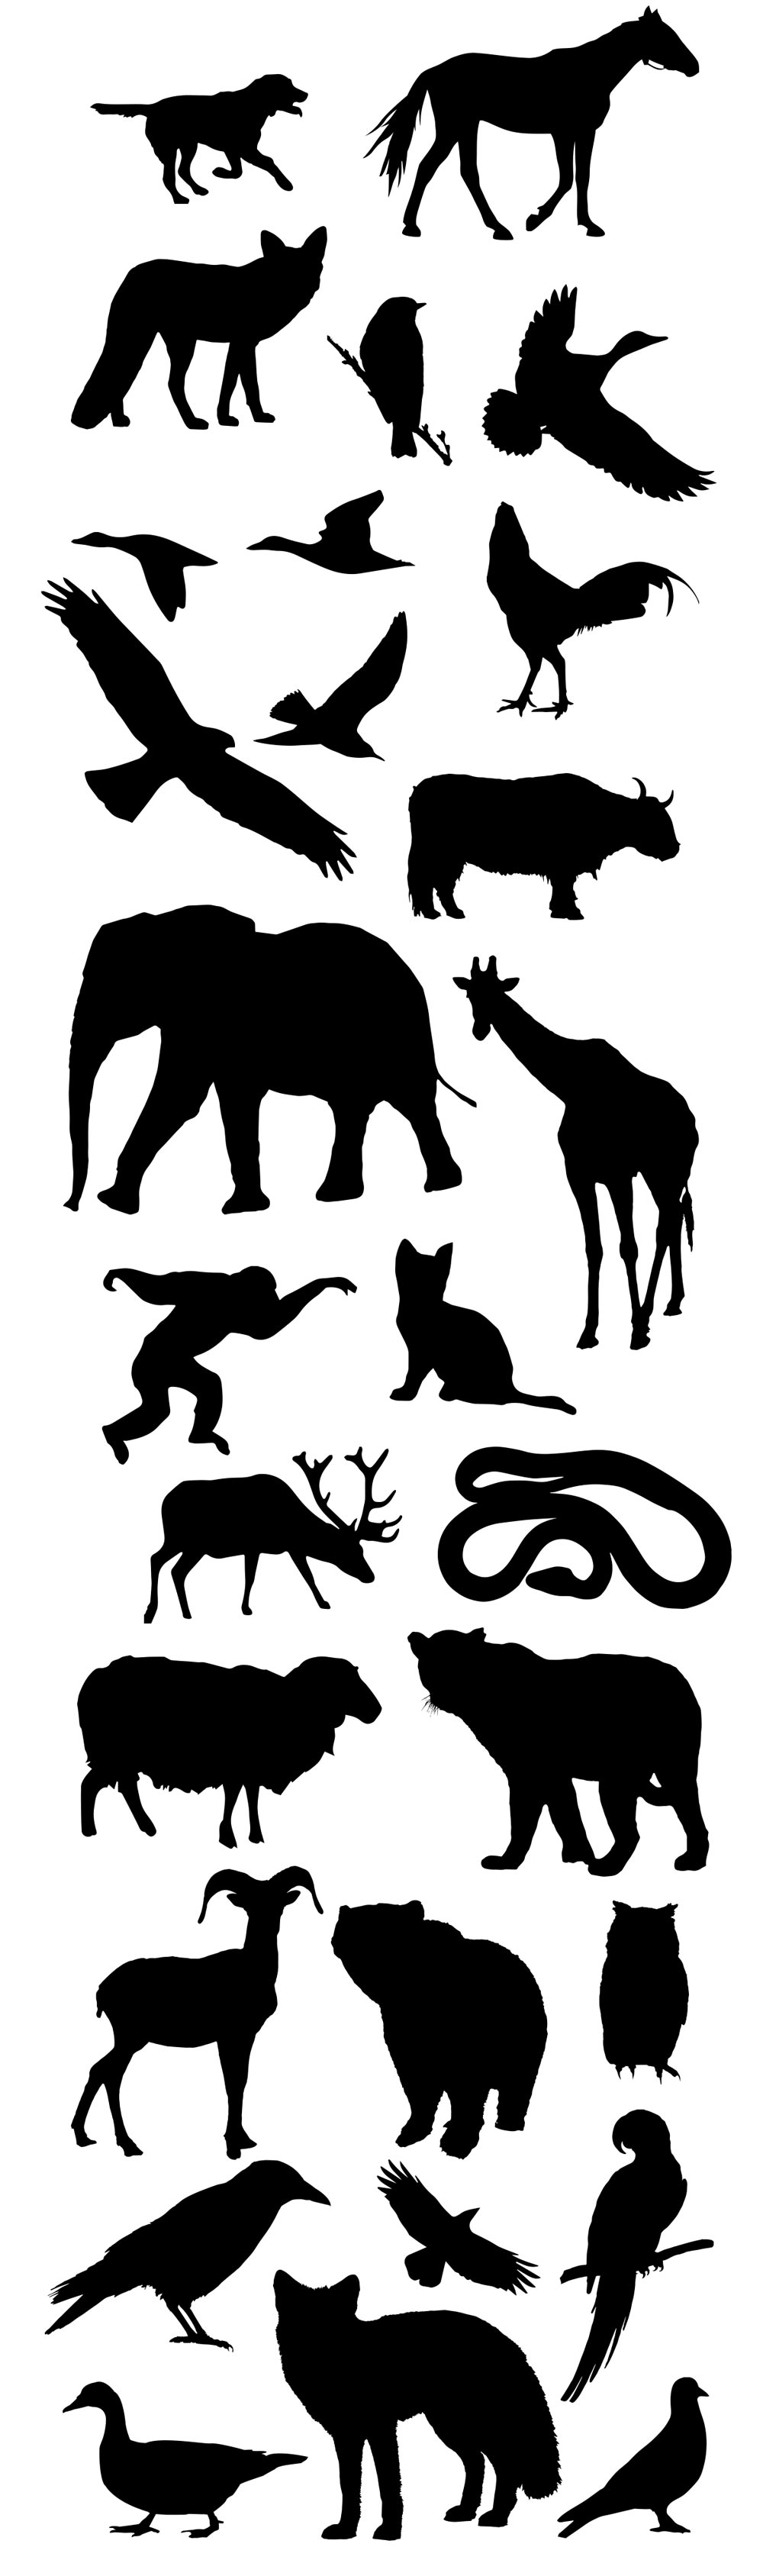 Animals & Birdsl Vector Silhouettes